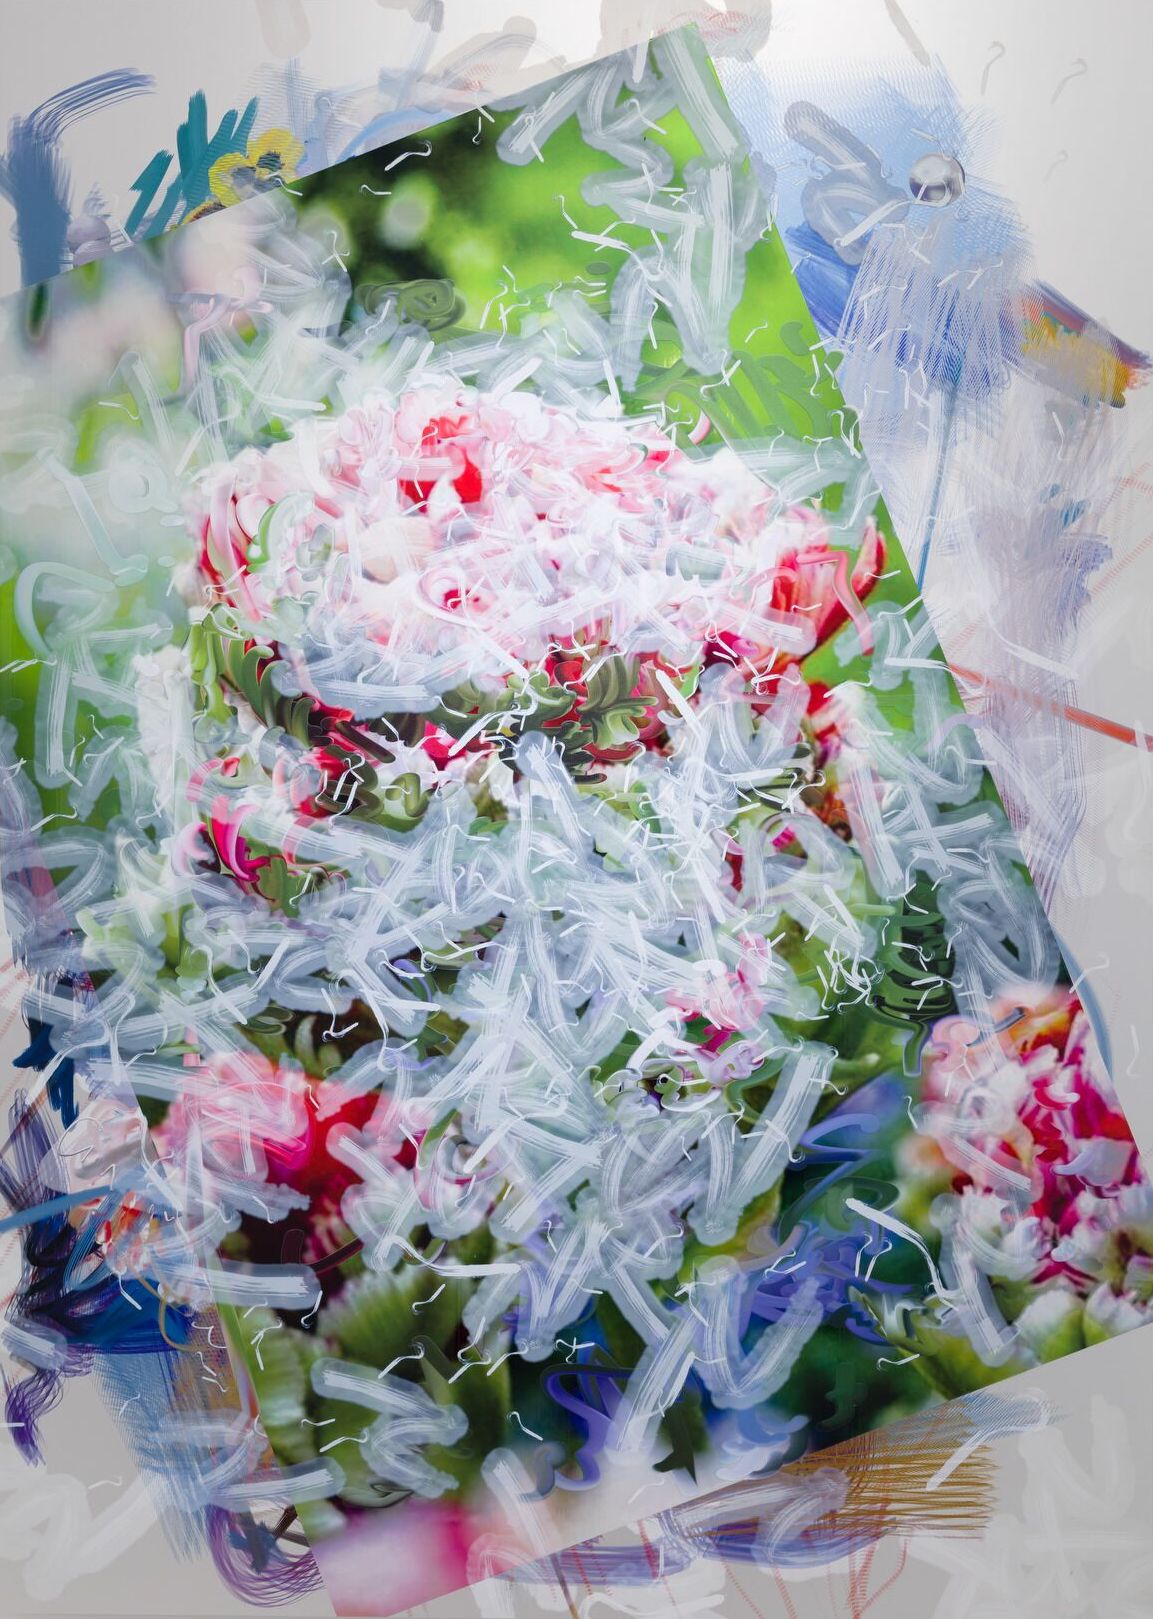 """Petra Cortright,  426 HEMI """"aargh definition""""""""blue trail range""""  2019 68 x 48 in Digital painting on anodized aluminum"""